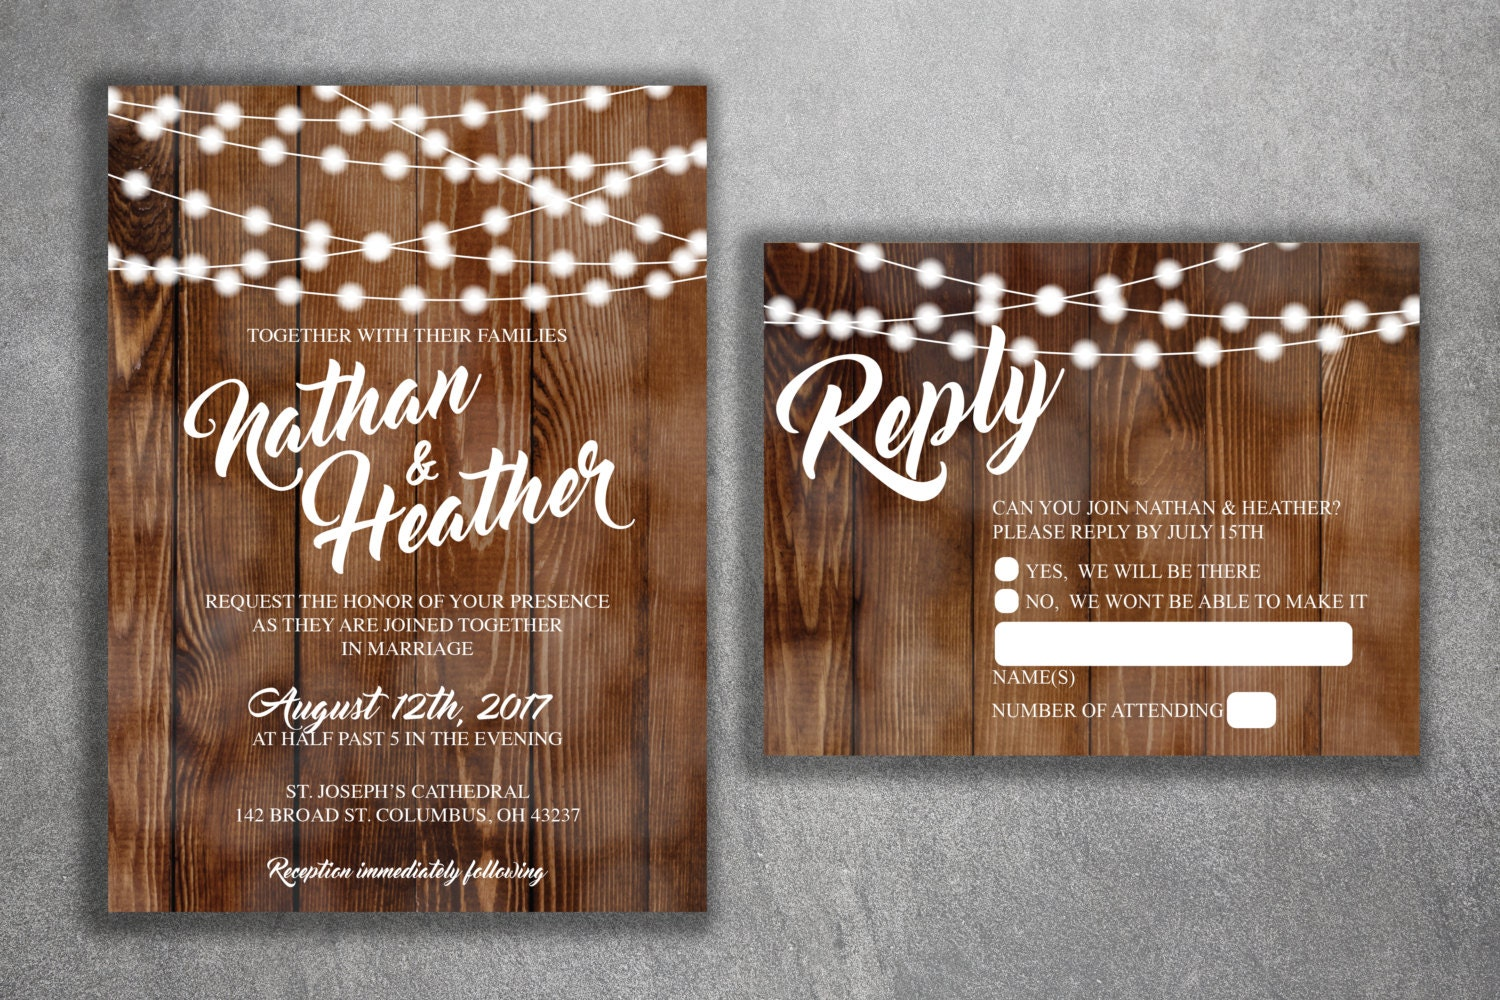 Rustic Wedding Invitations, Burlap, Kraft, Wood, Country Wedding Invitation,  Affordable, Woodsy, Lights, Summer, Southern, Wedding Invite